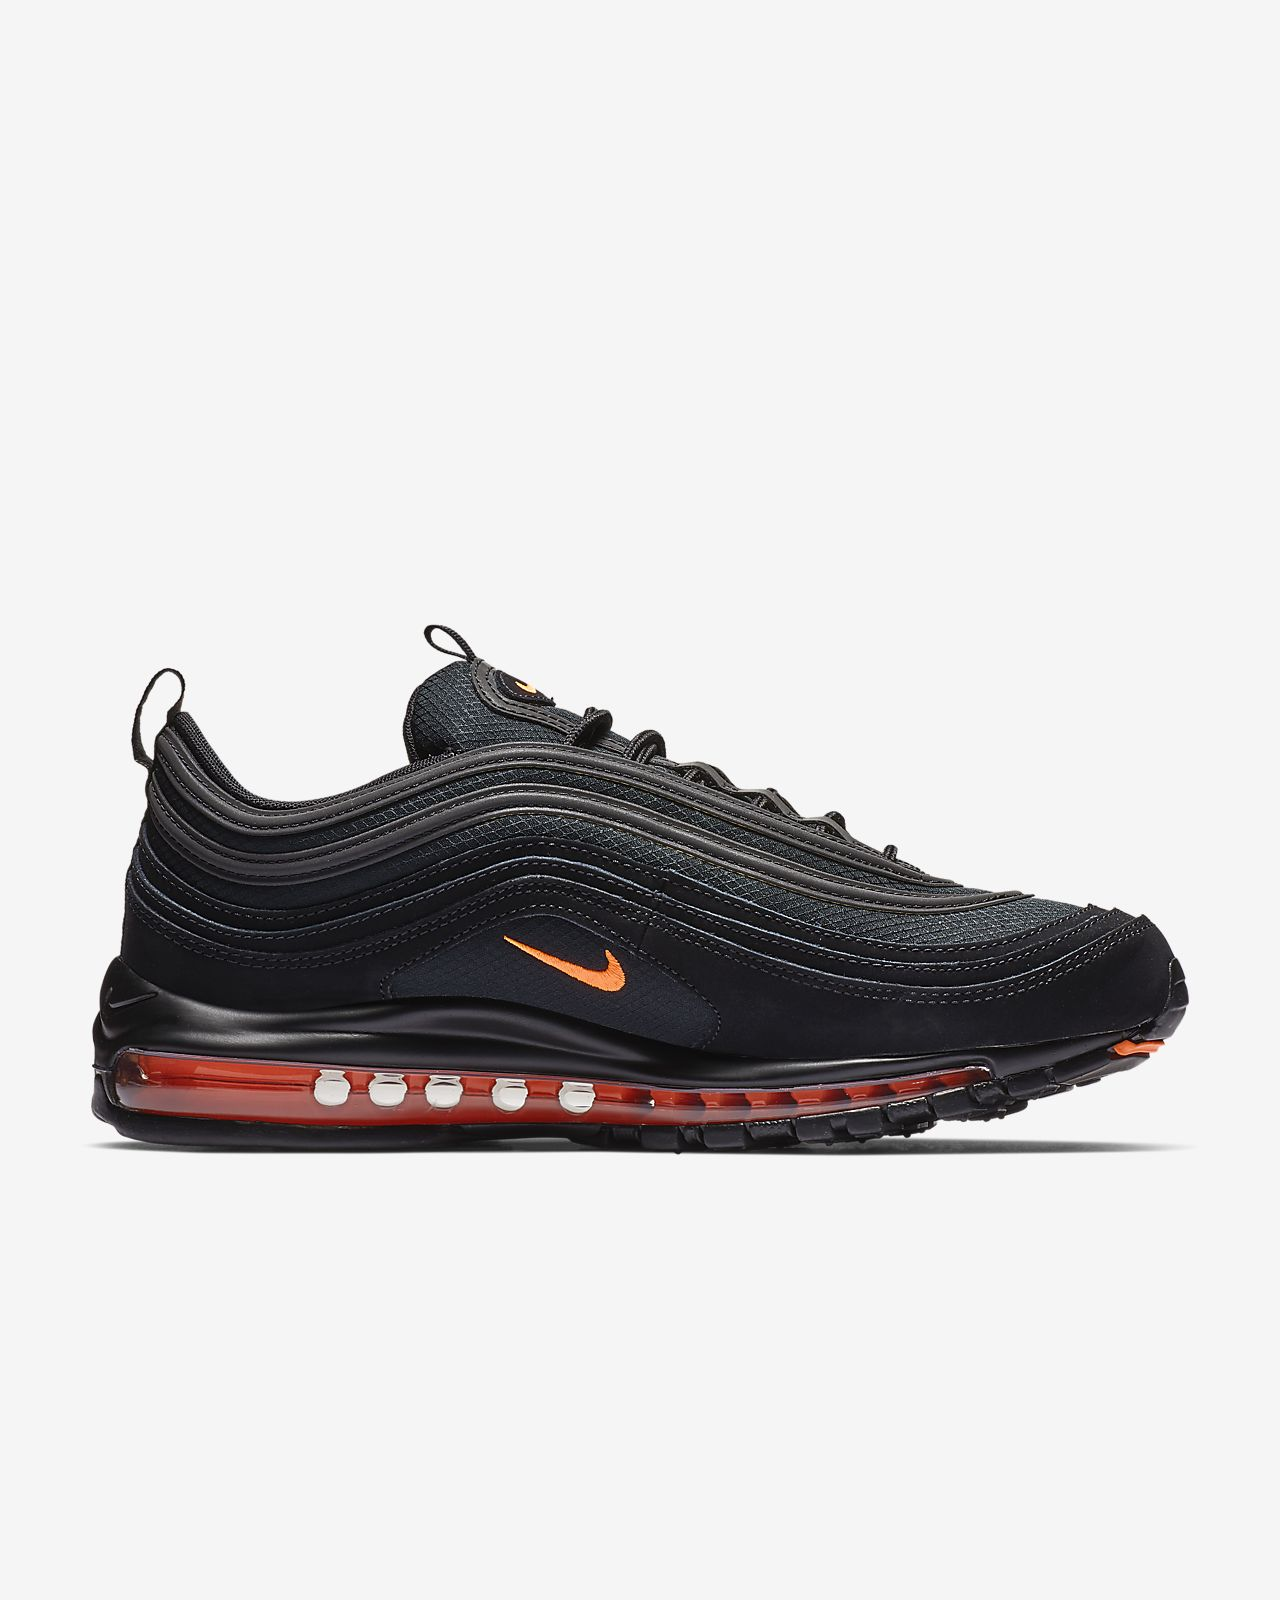 9b86bdb38d Nike Air Max 97 Men's Shoe. Nike.com AU